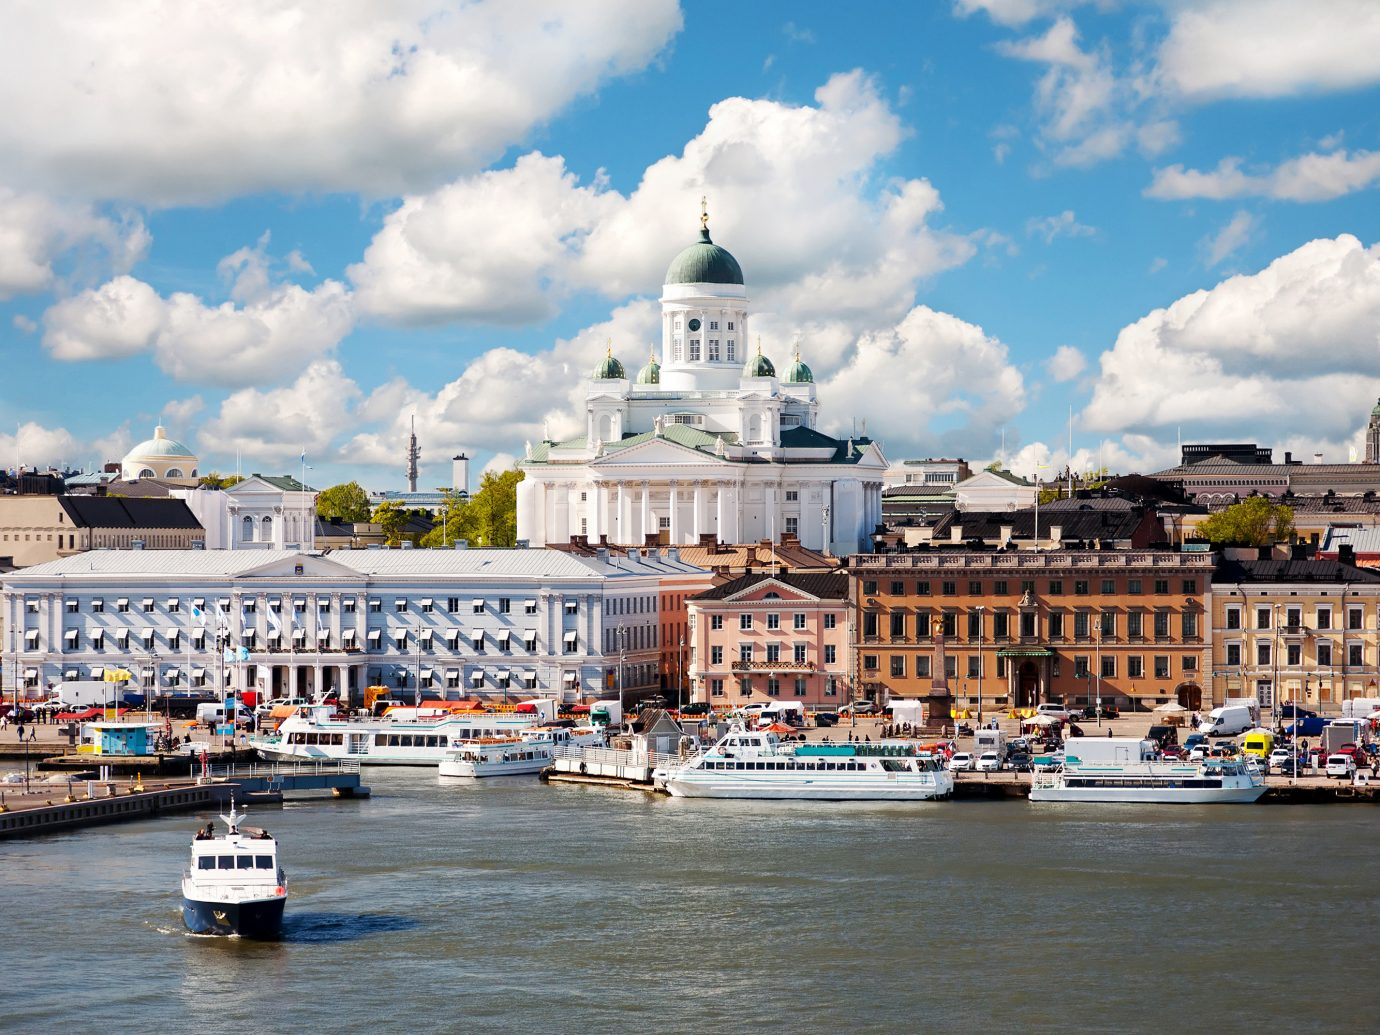 Finland Trip Ideas sky outdoor scene Boat Harbor water geographical feature River Town landmark City cityscape human settlement vacation tourism vehicle waterway Sea town square palace travel passenger ship docked Canal several